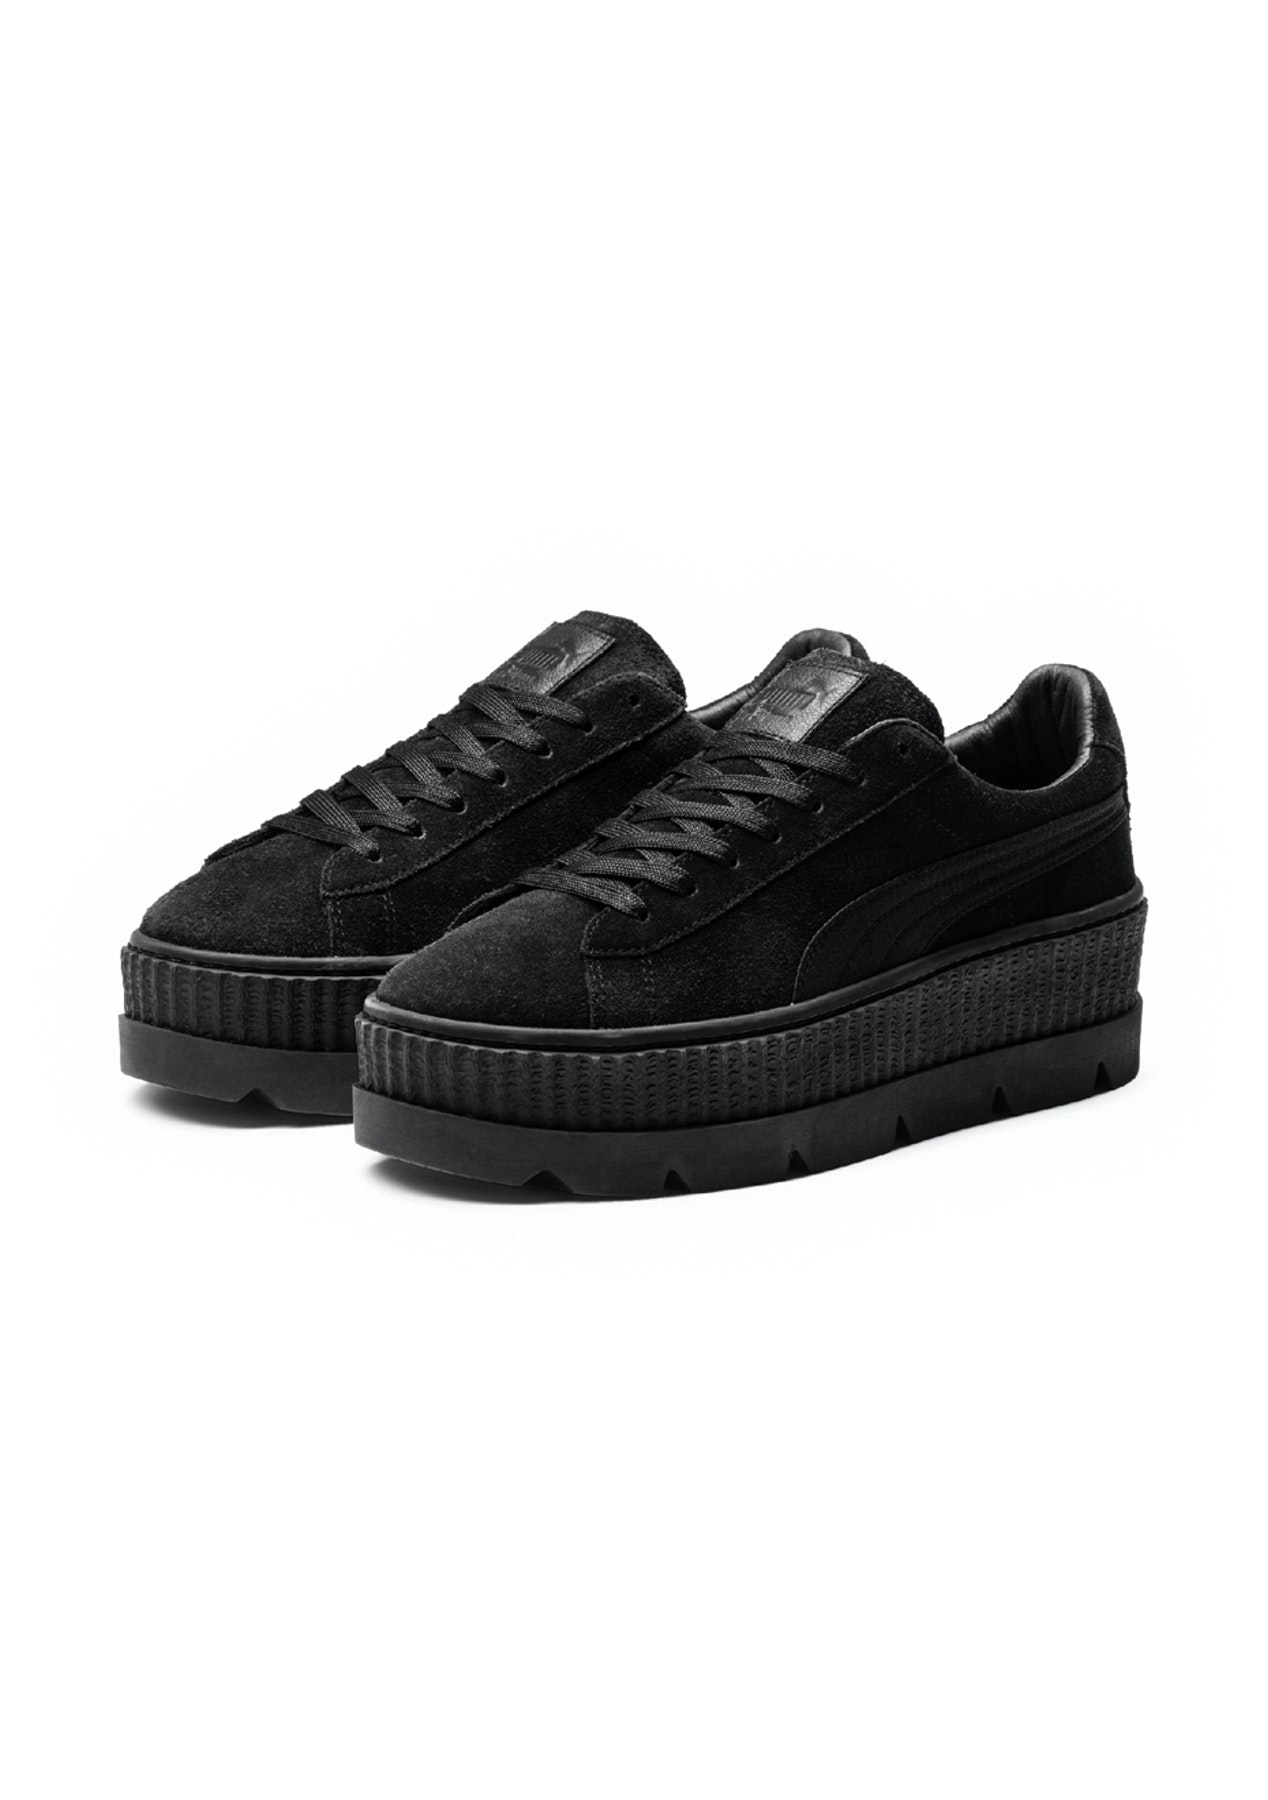 382e05ce42c FENTY Suede Cleated Creeper Womens - PUMA FENTY - Onceit